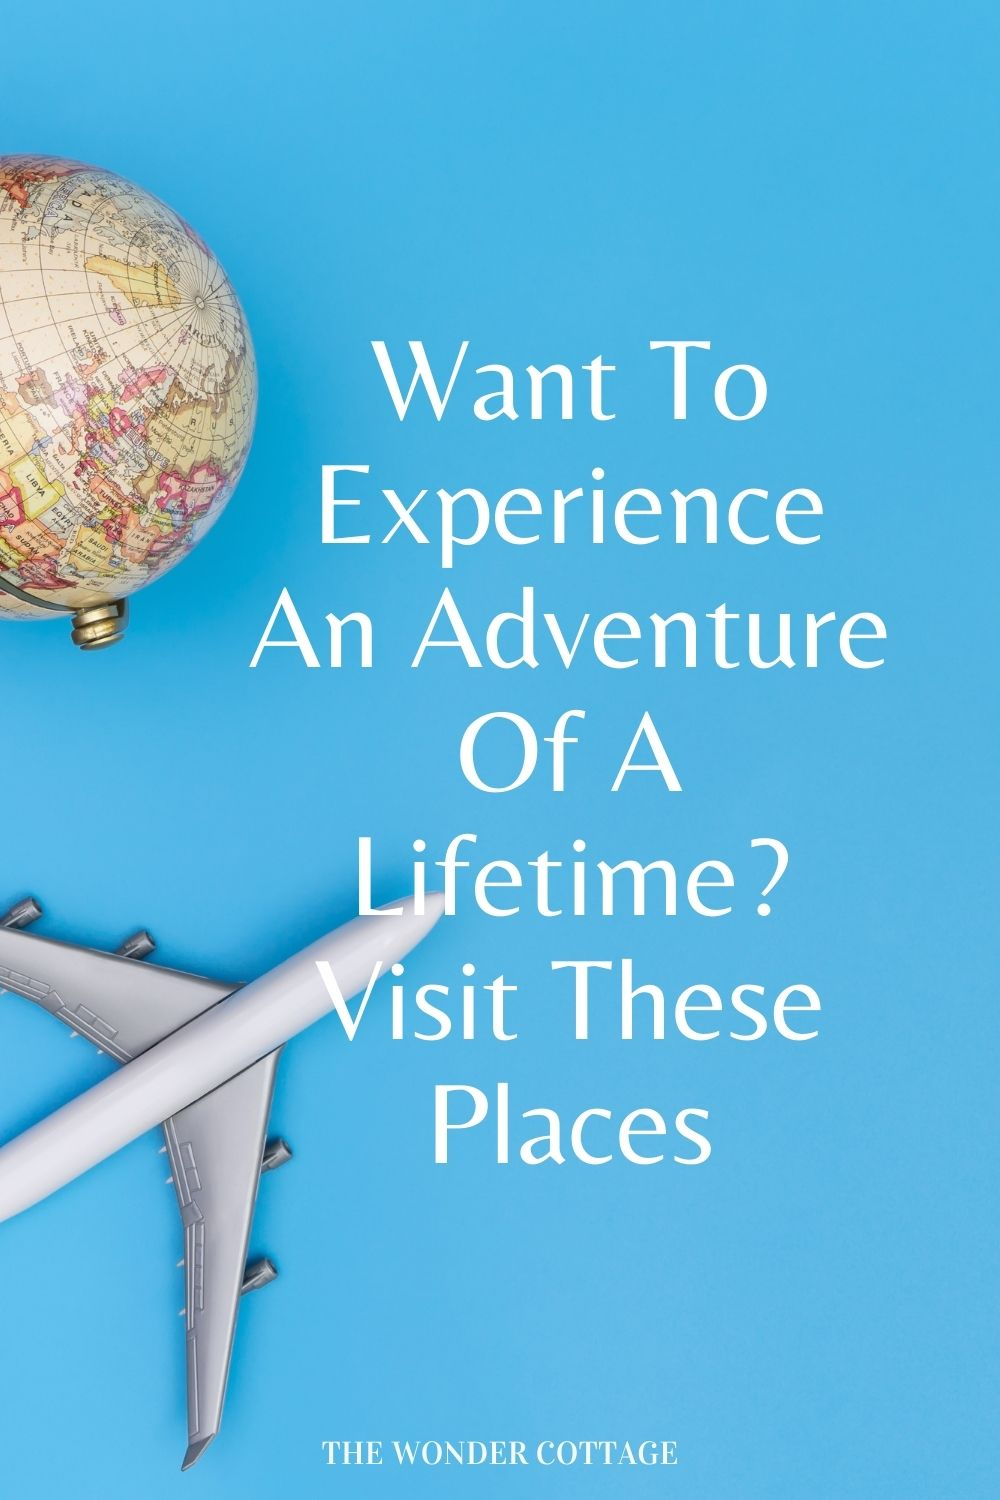 Want To Experience An Adventure Of A Lifetime? Visit These Places